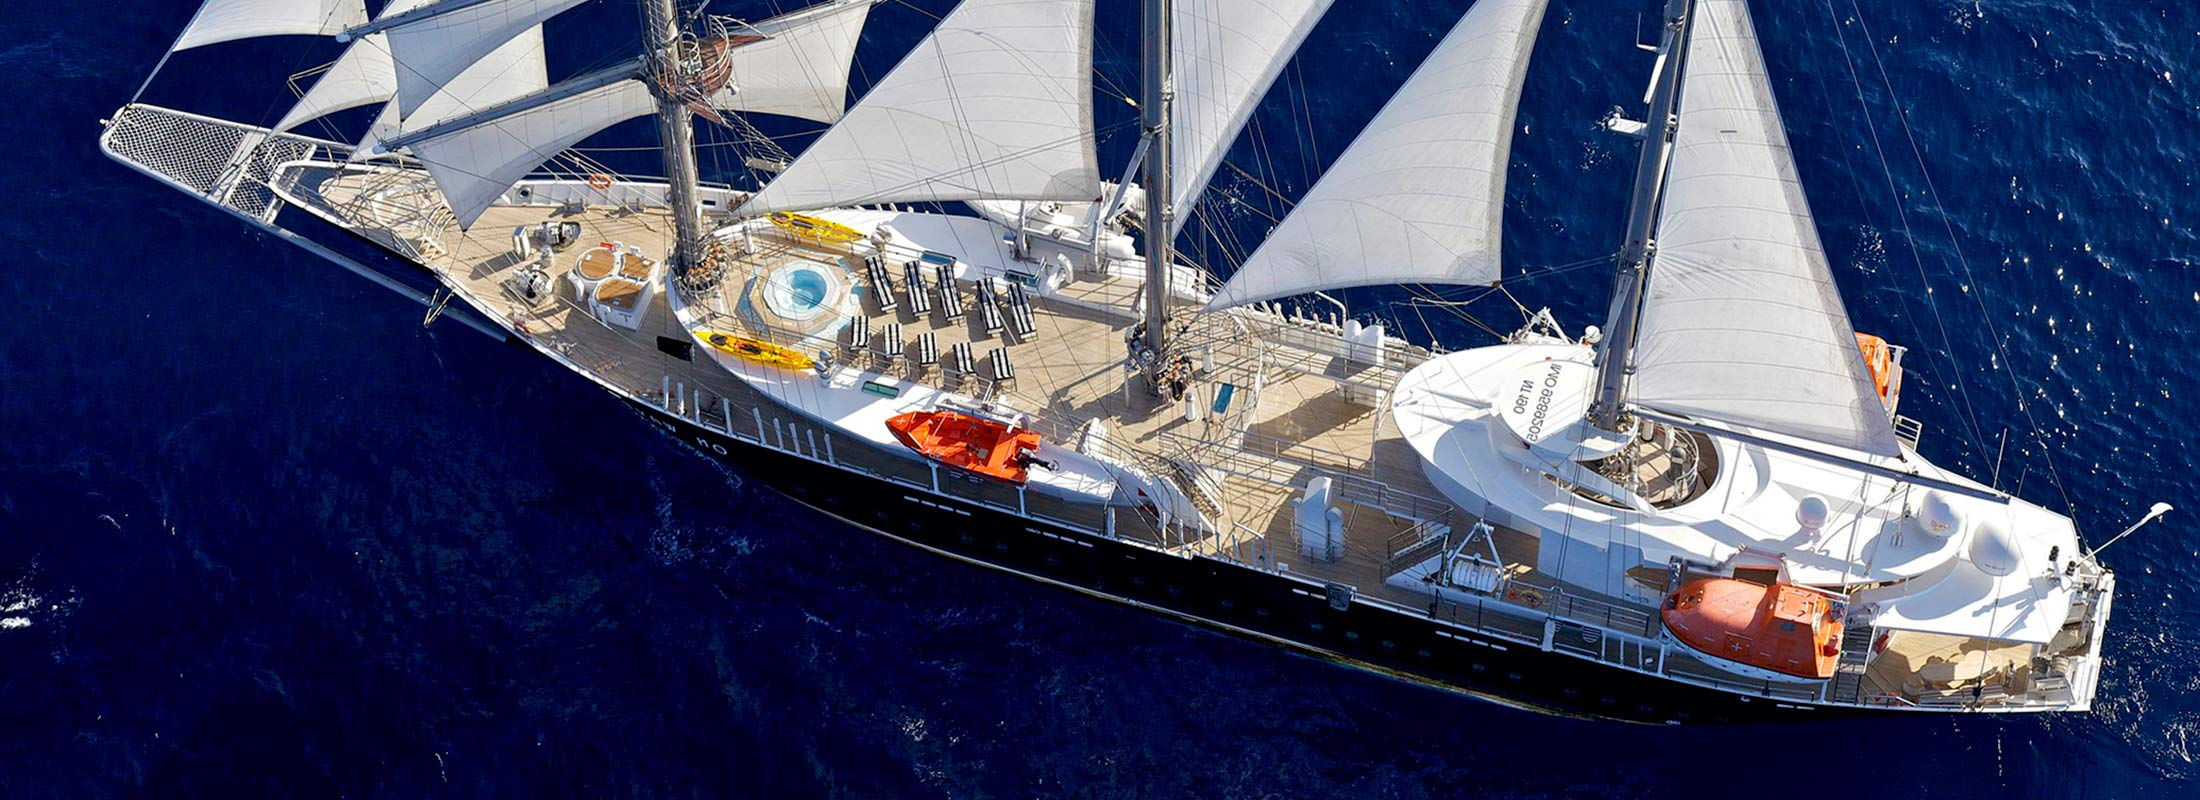 Running On Waves Yacht Charter Details Abberley Luxury